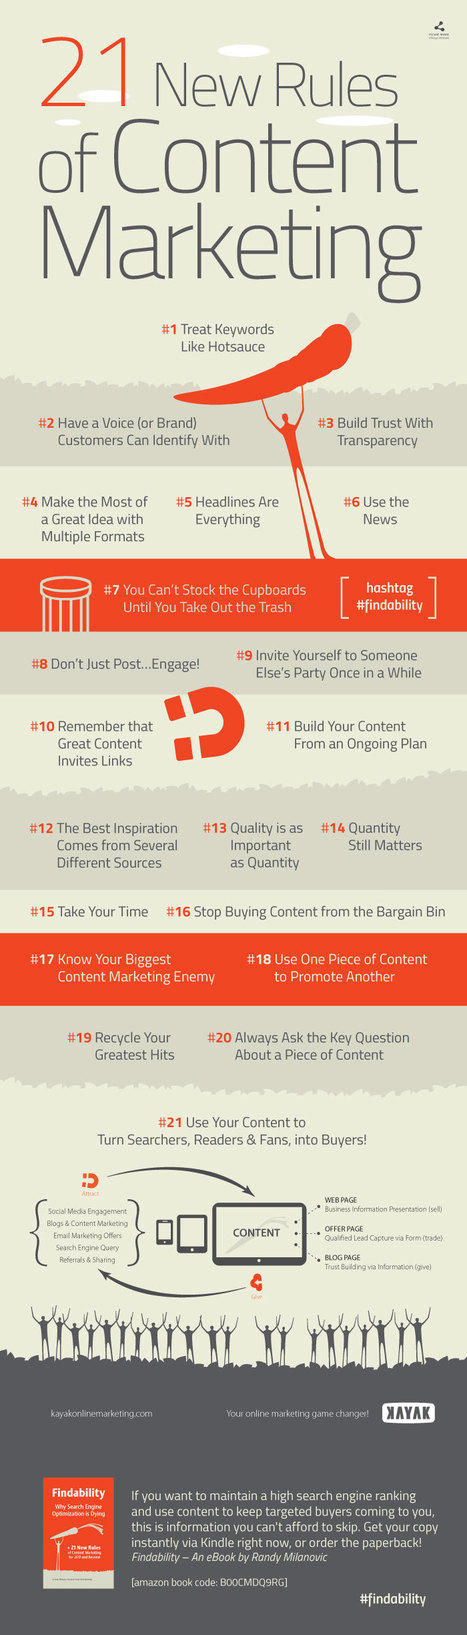 The 21 New Rules of Content Marketing [INFOGRAPHIC] | E-marketing knowledge & principles | Scoop.it